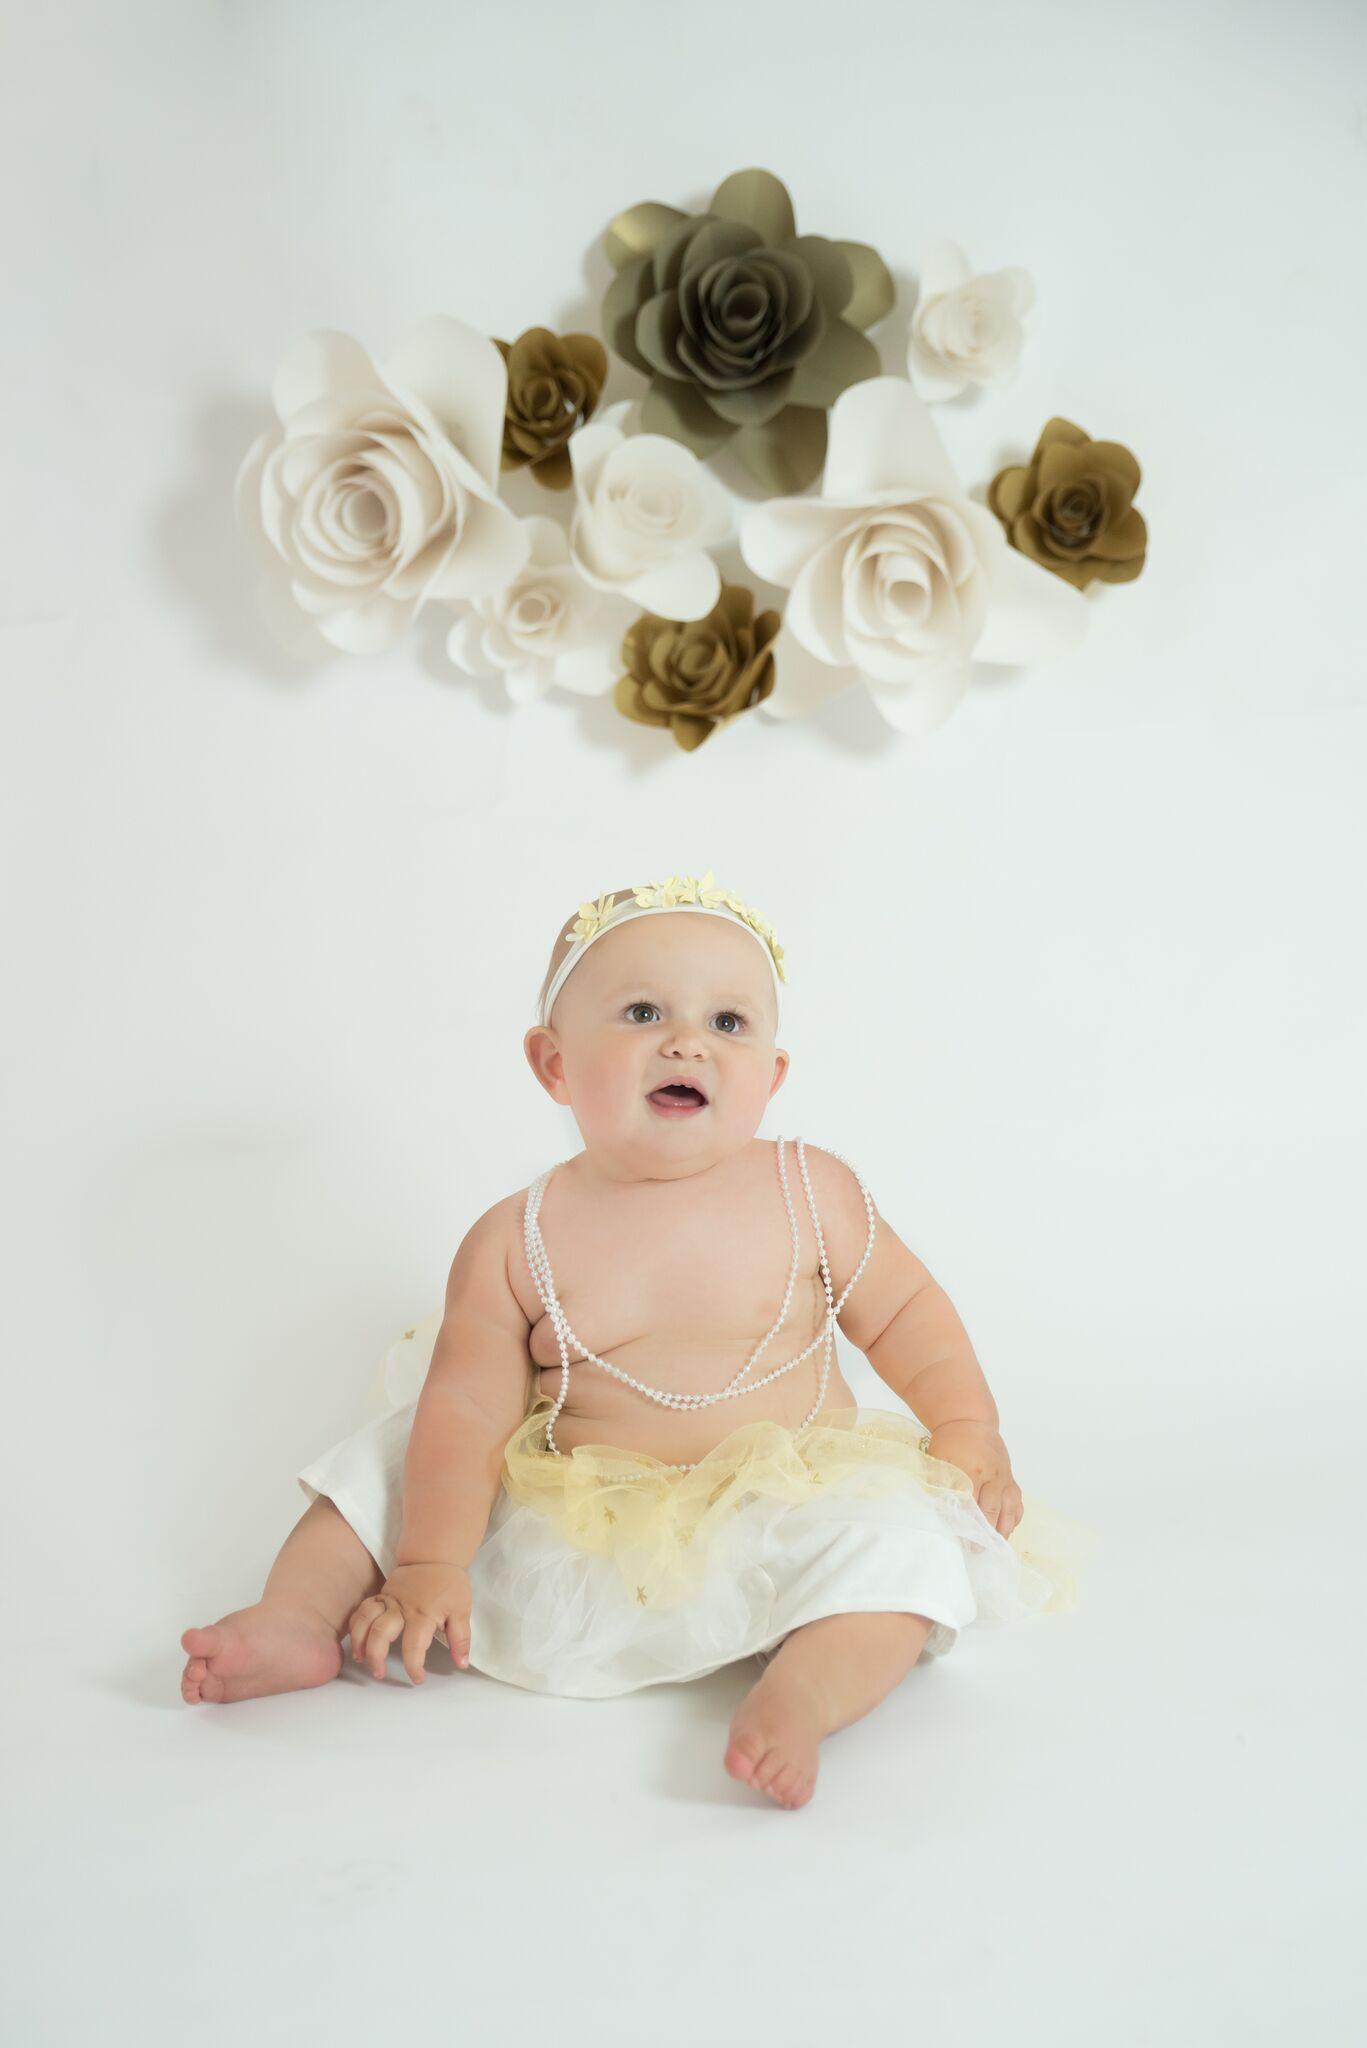 Quinn is wearing a headband designed by me and the flowers on the backdrop were also created by me.  Being able to complete a setup from start to finish is very gratifying!